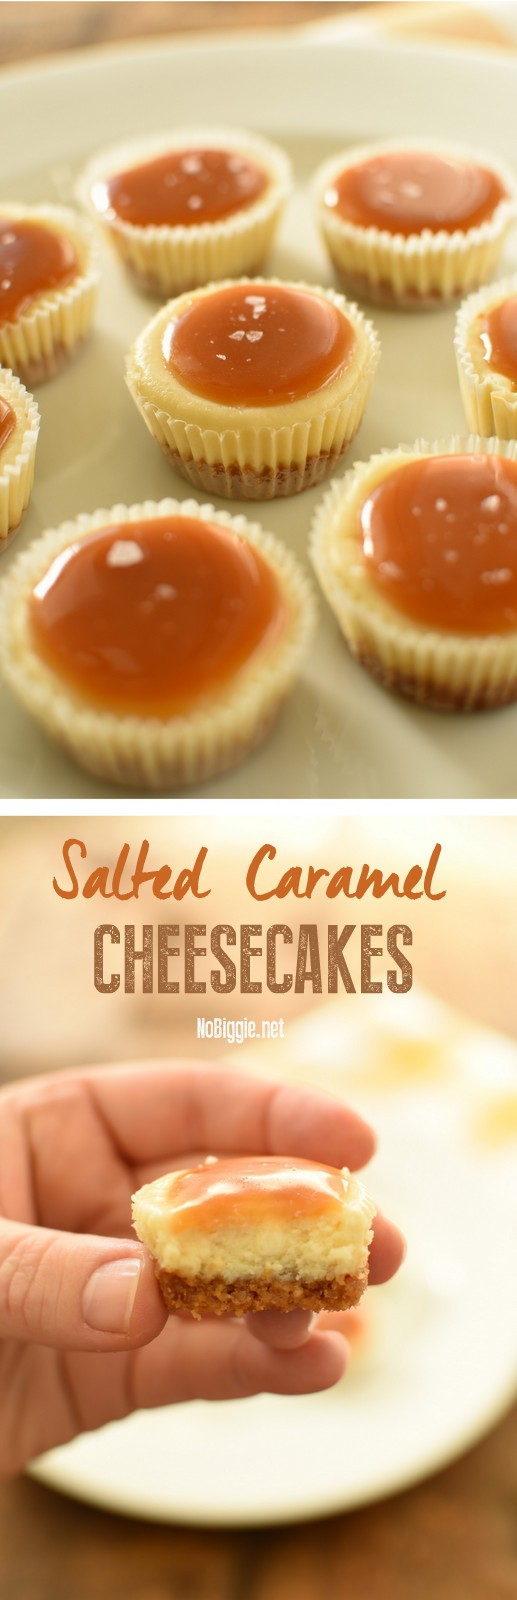 Salted Caramel Cheesecakes - mini cheesecakes that are perfect for feeding a crowd! #minidesserts #cheesecake #saltedcaramel #saltedcaramelcheesecake #cheesecakerecipes